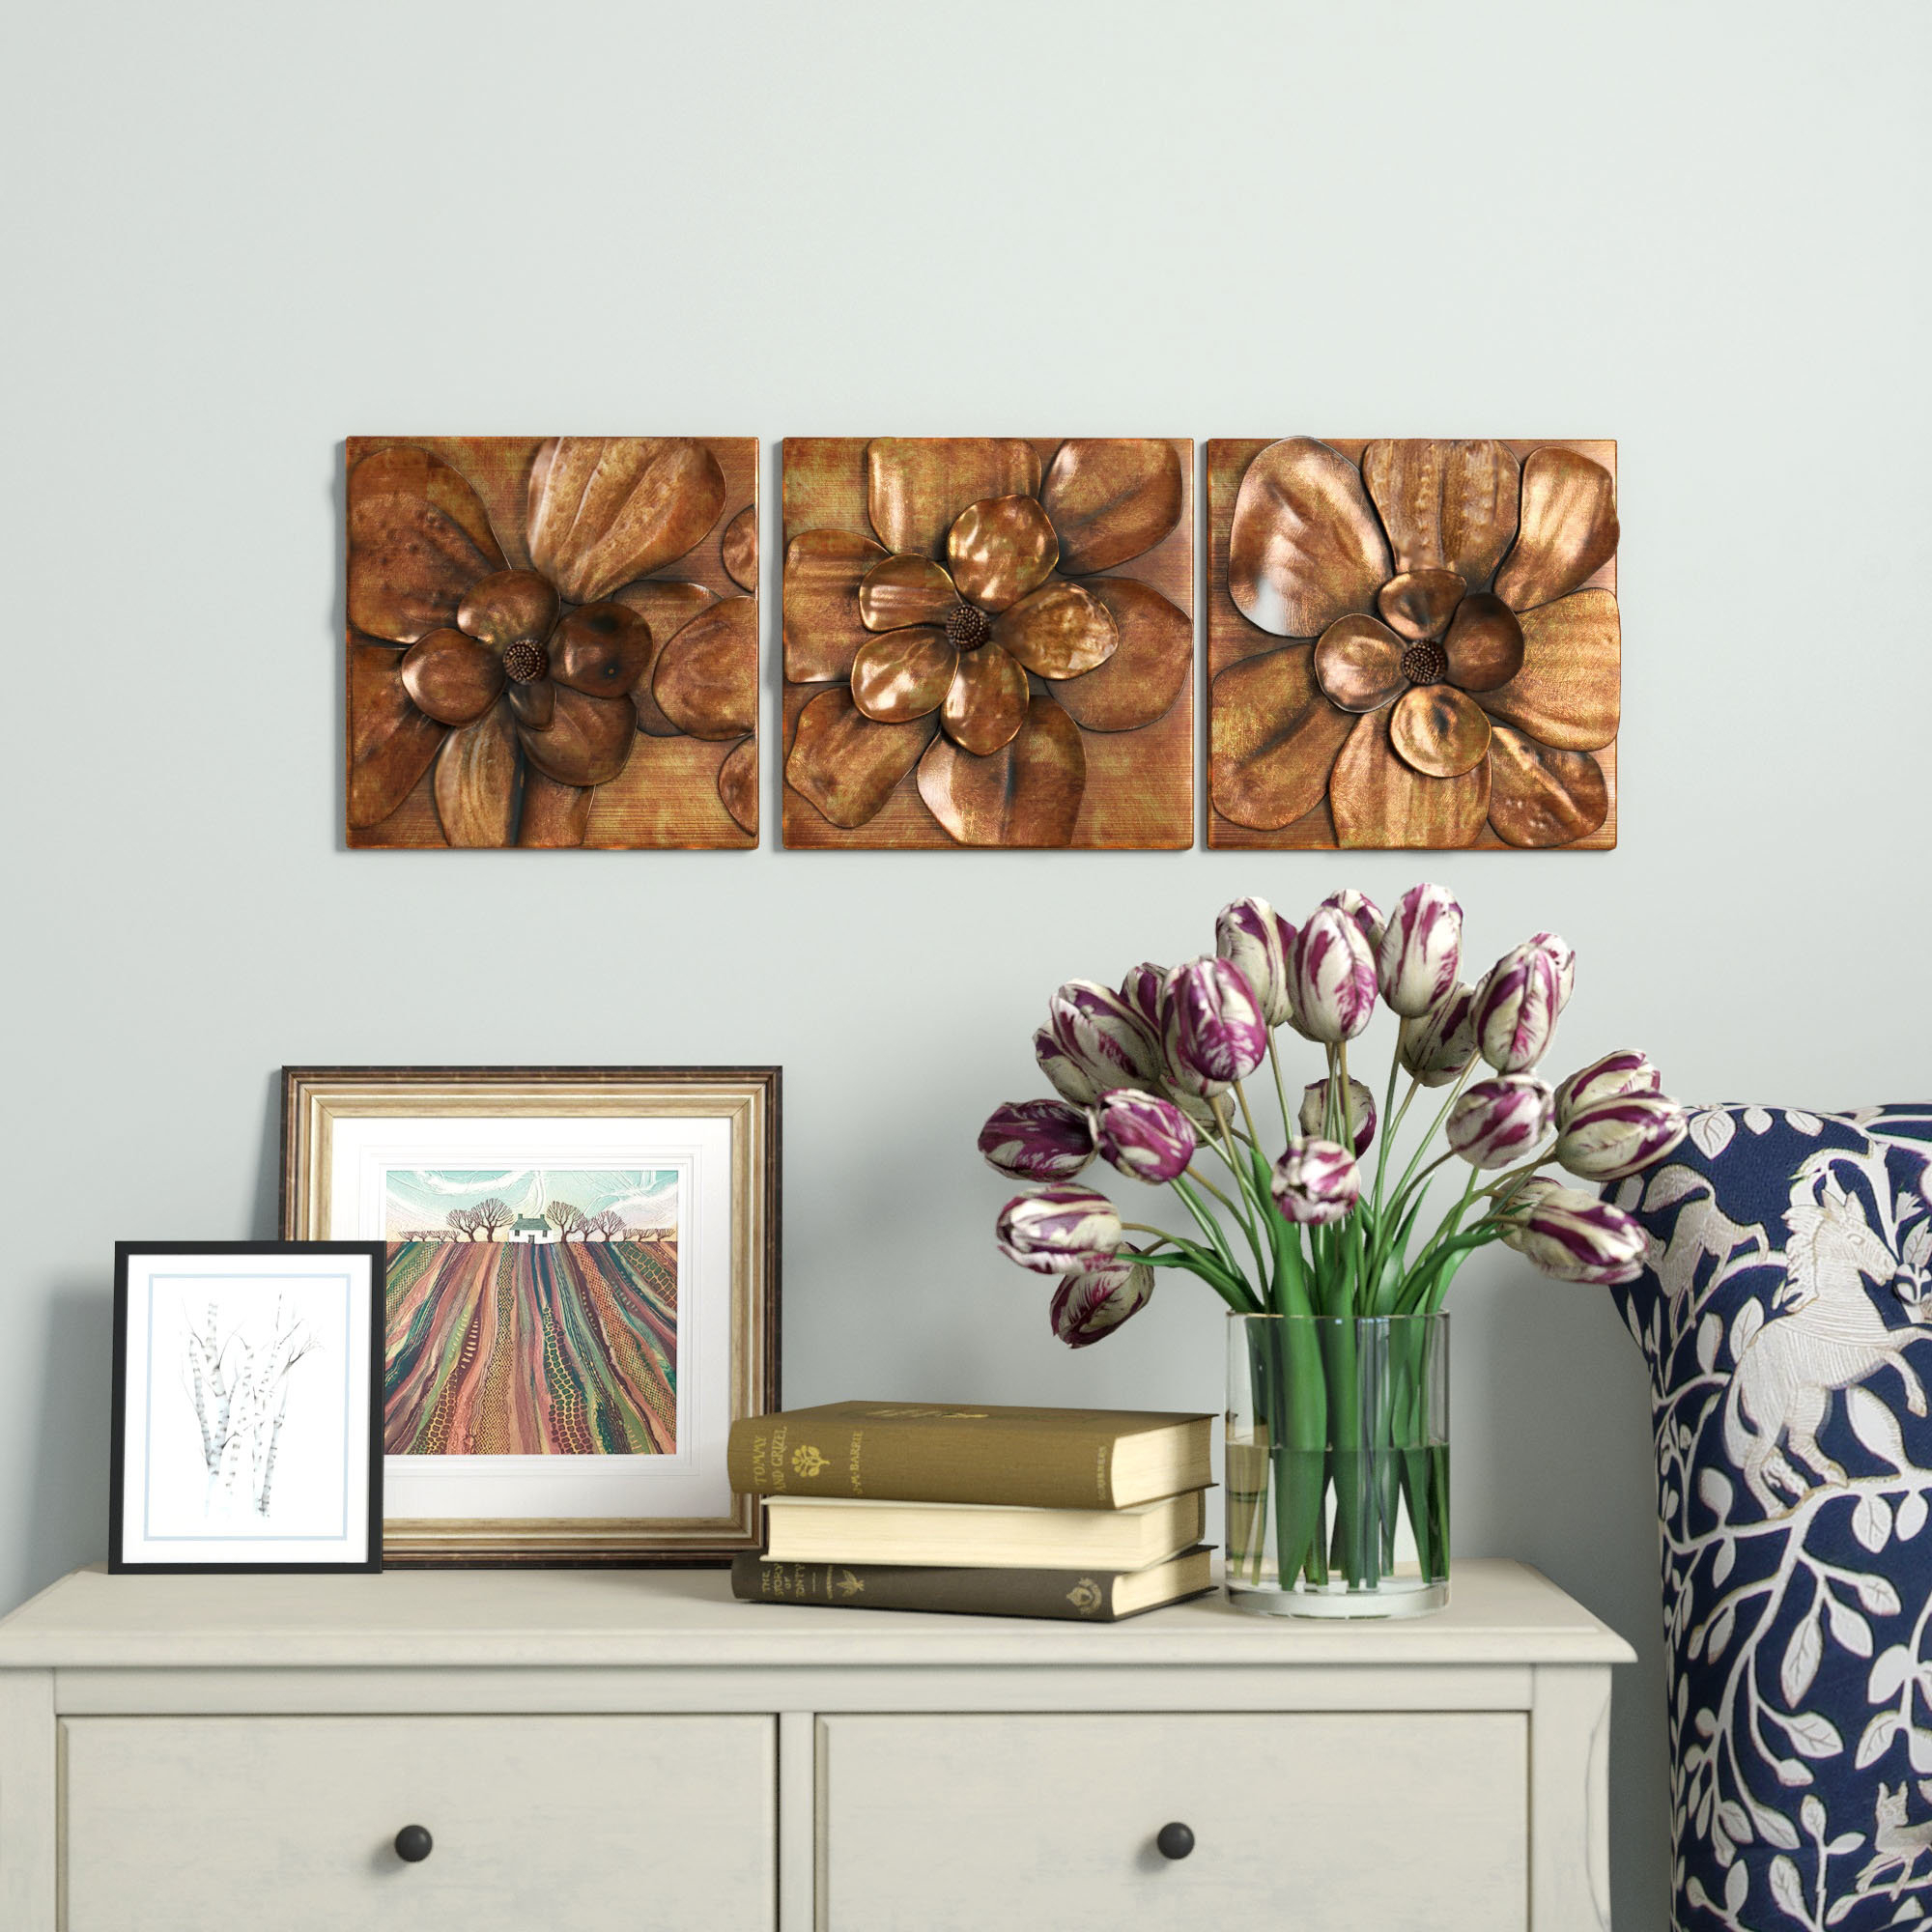 Carved Wooden Wall Panel | Wayfair.co.uk throughout 3 Piece Magnolia Brown Panel Wall Decor Sets (Image 12 of 30)